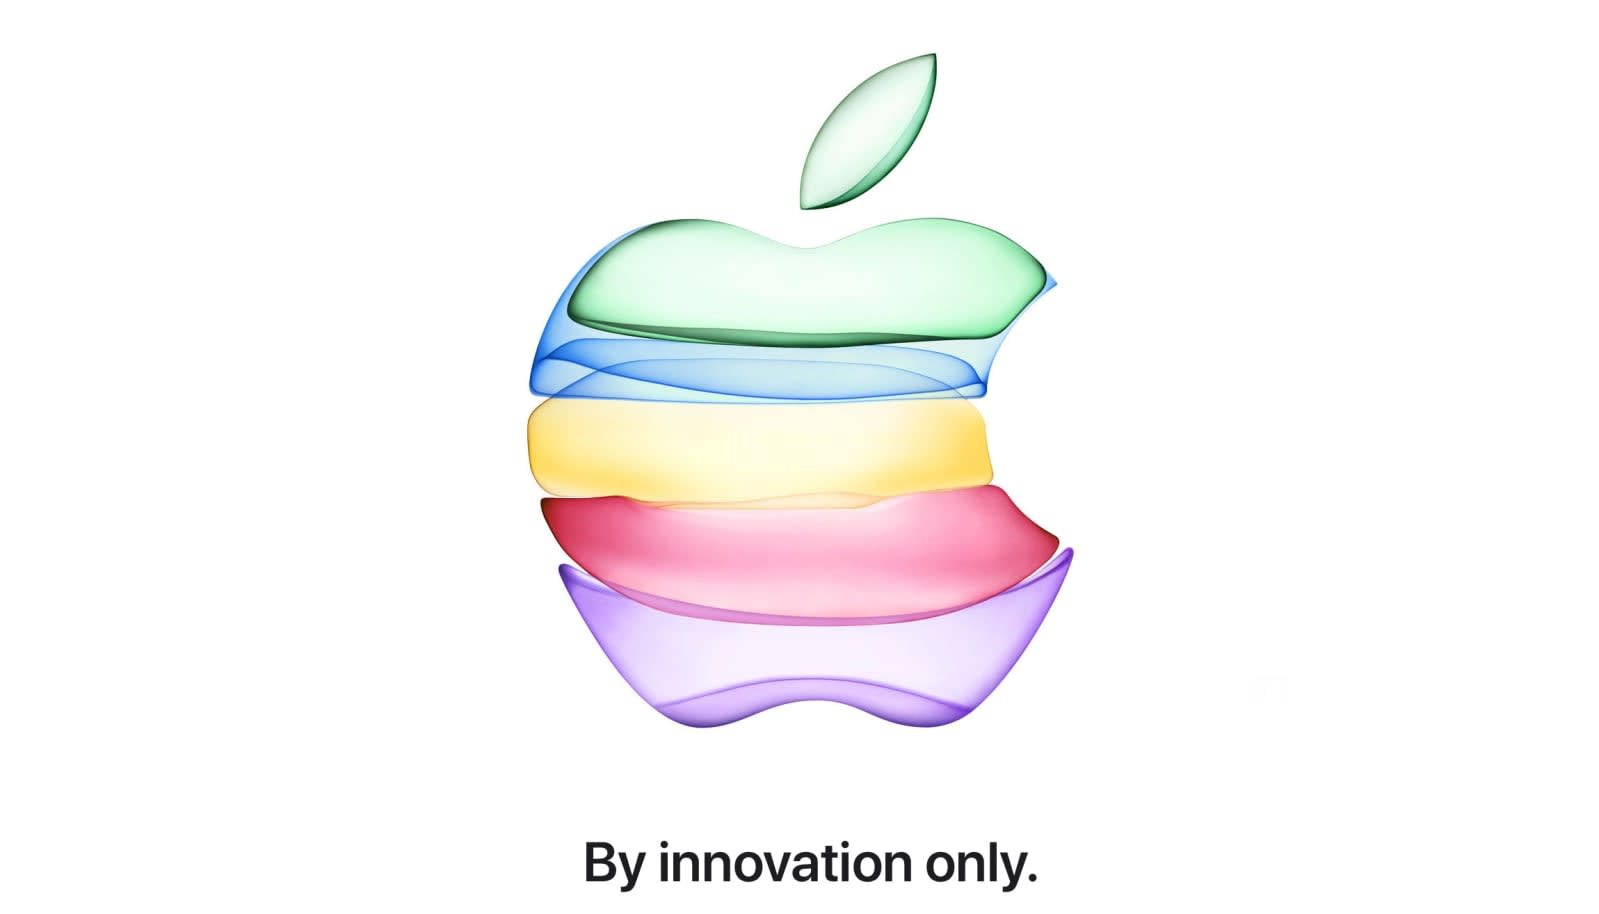 Apple will unveil its latest iPhones on September 10th